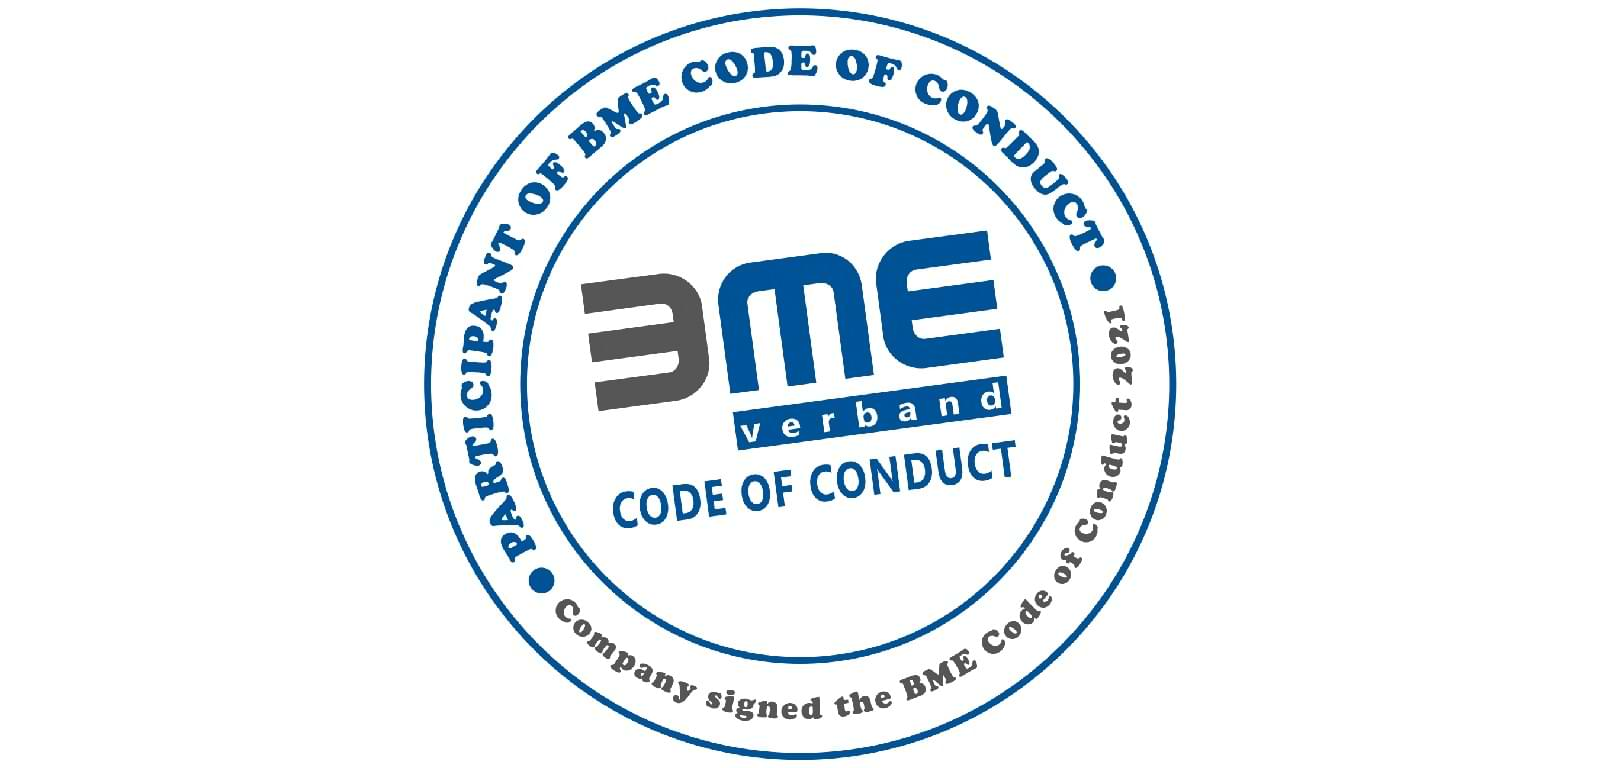 BME Compliance-Initiative: Code of Conduct